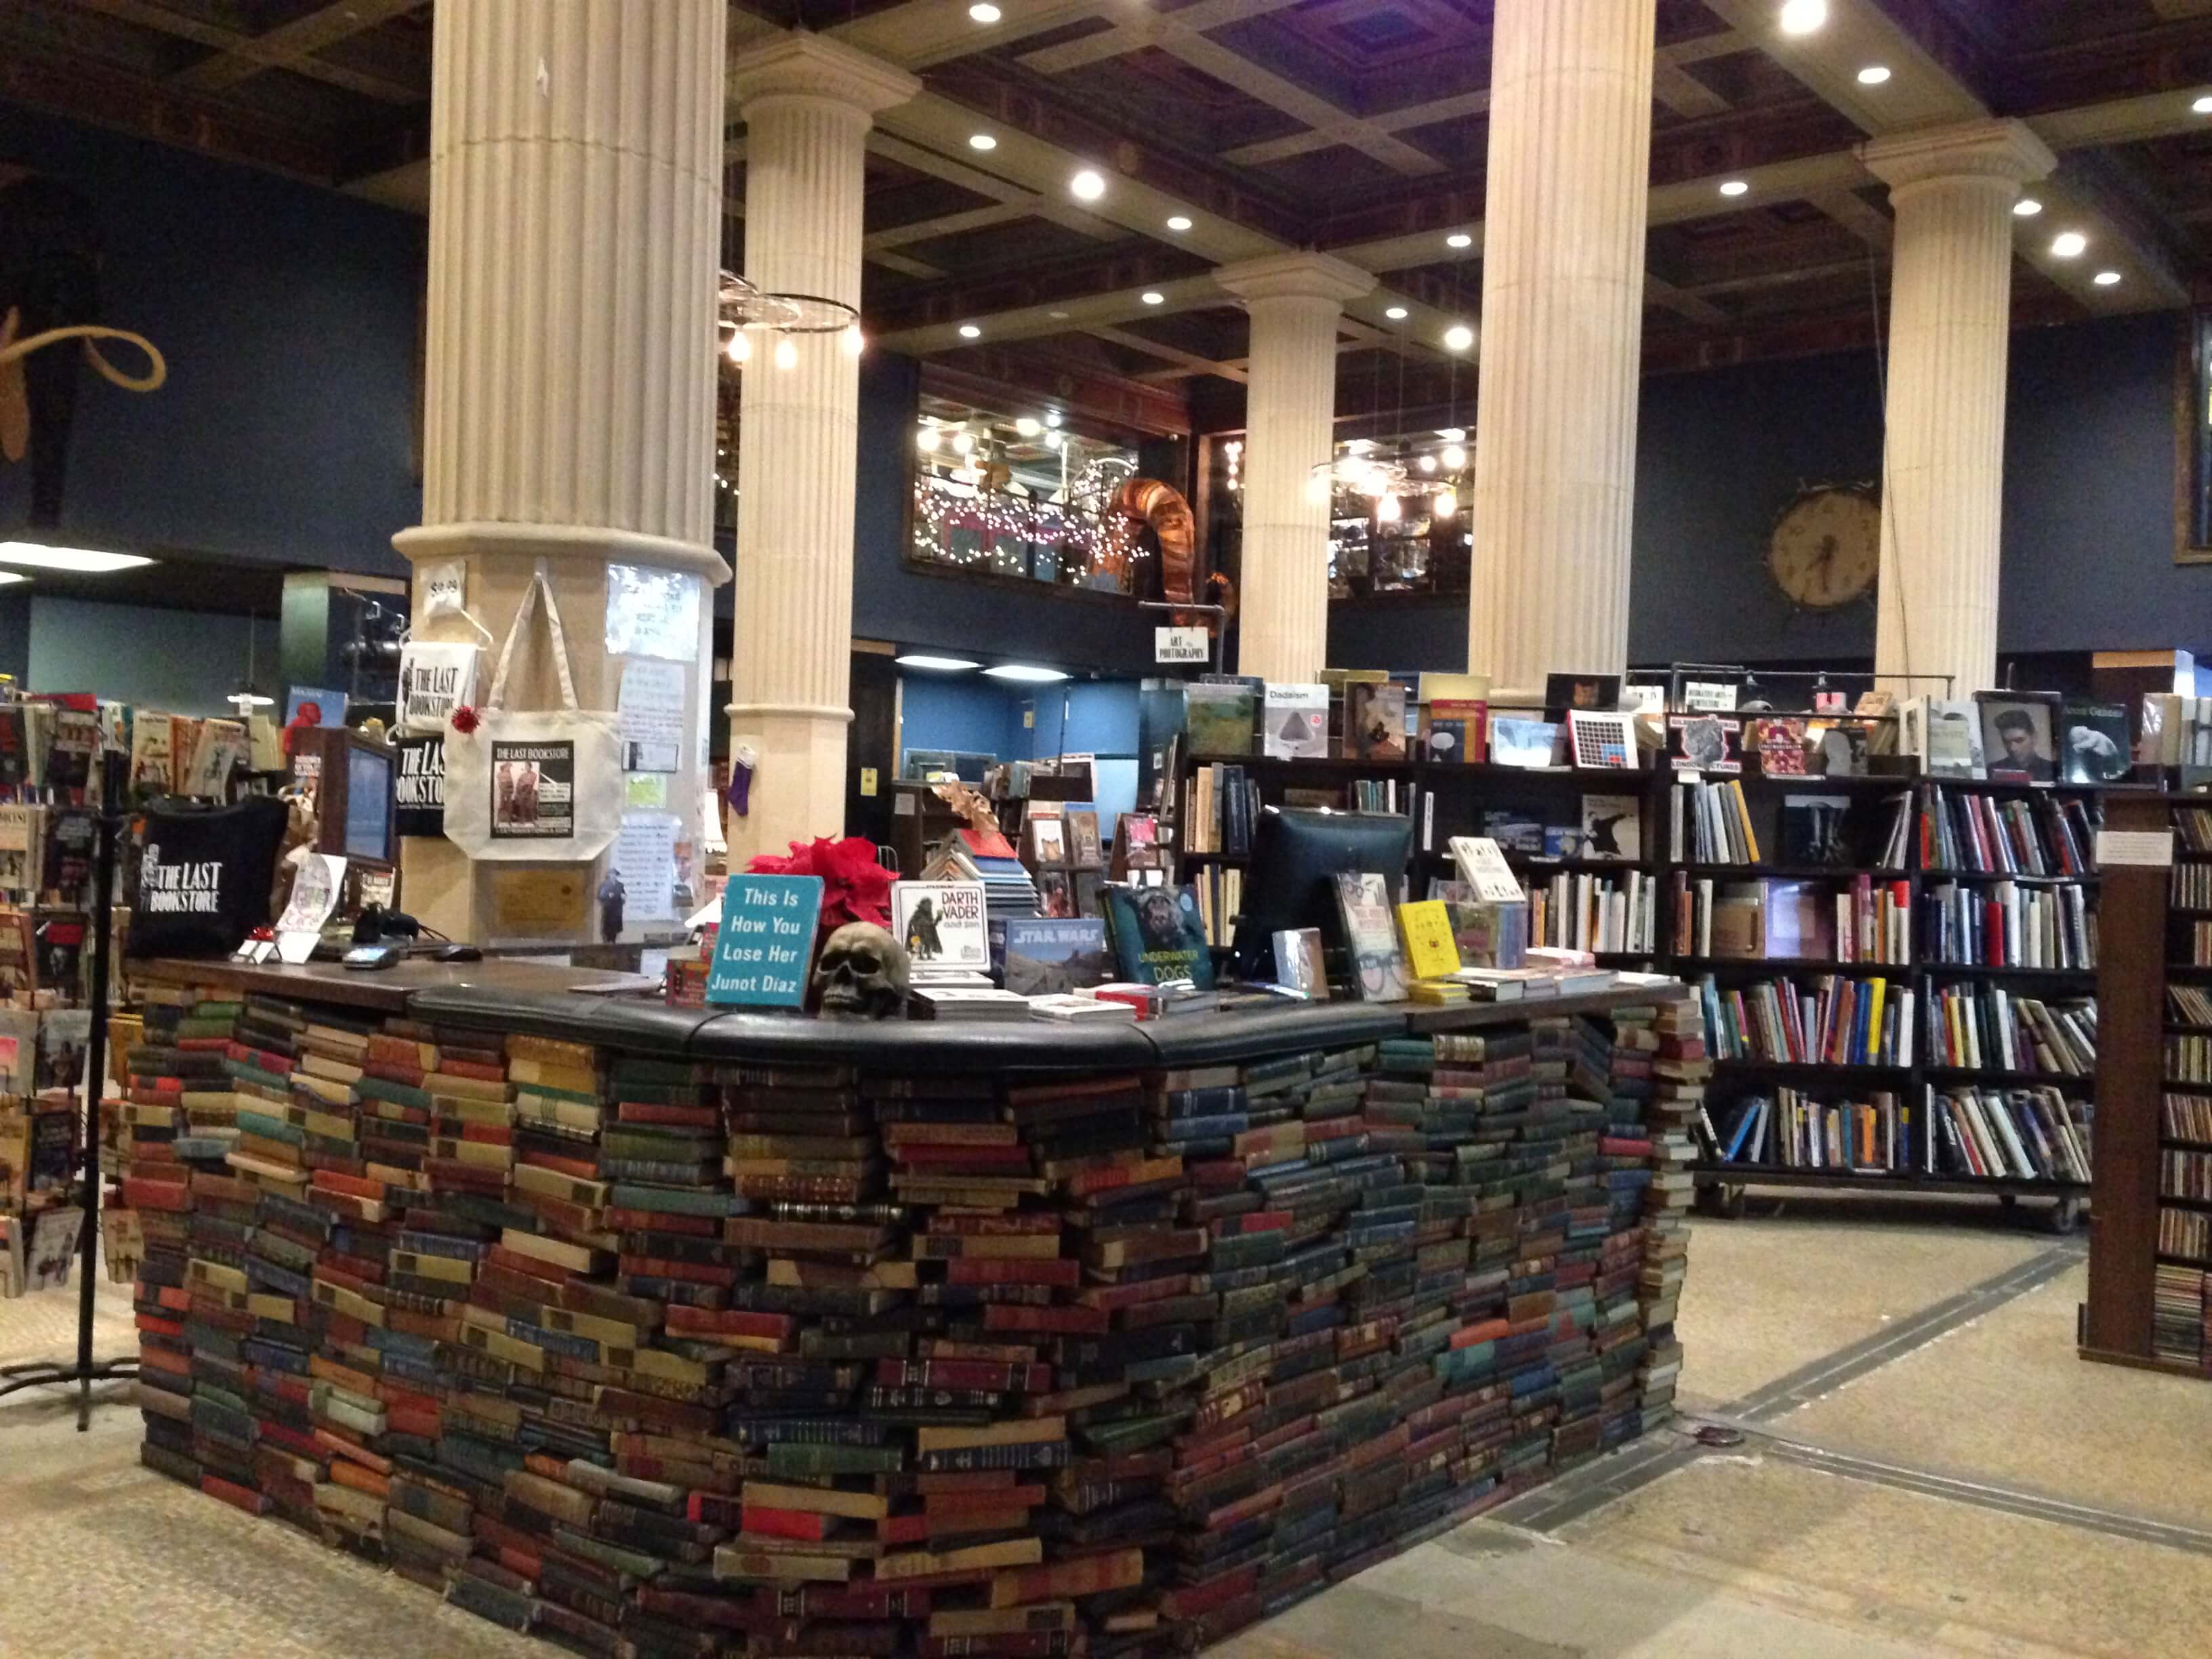 Lobby of the Last Bookstore